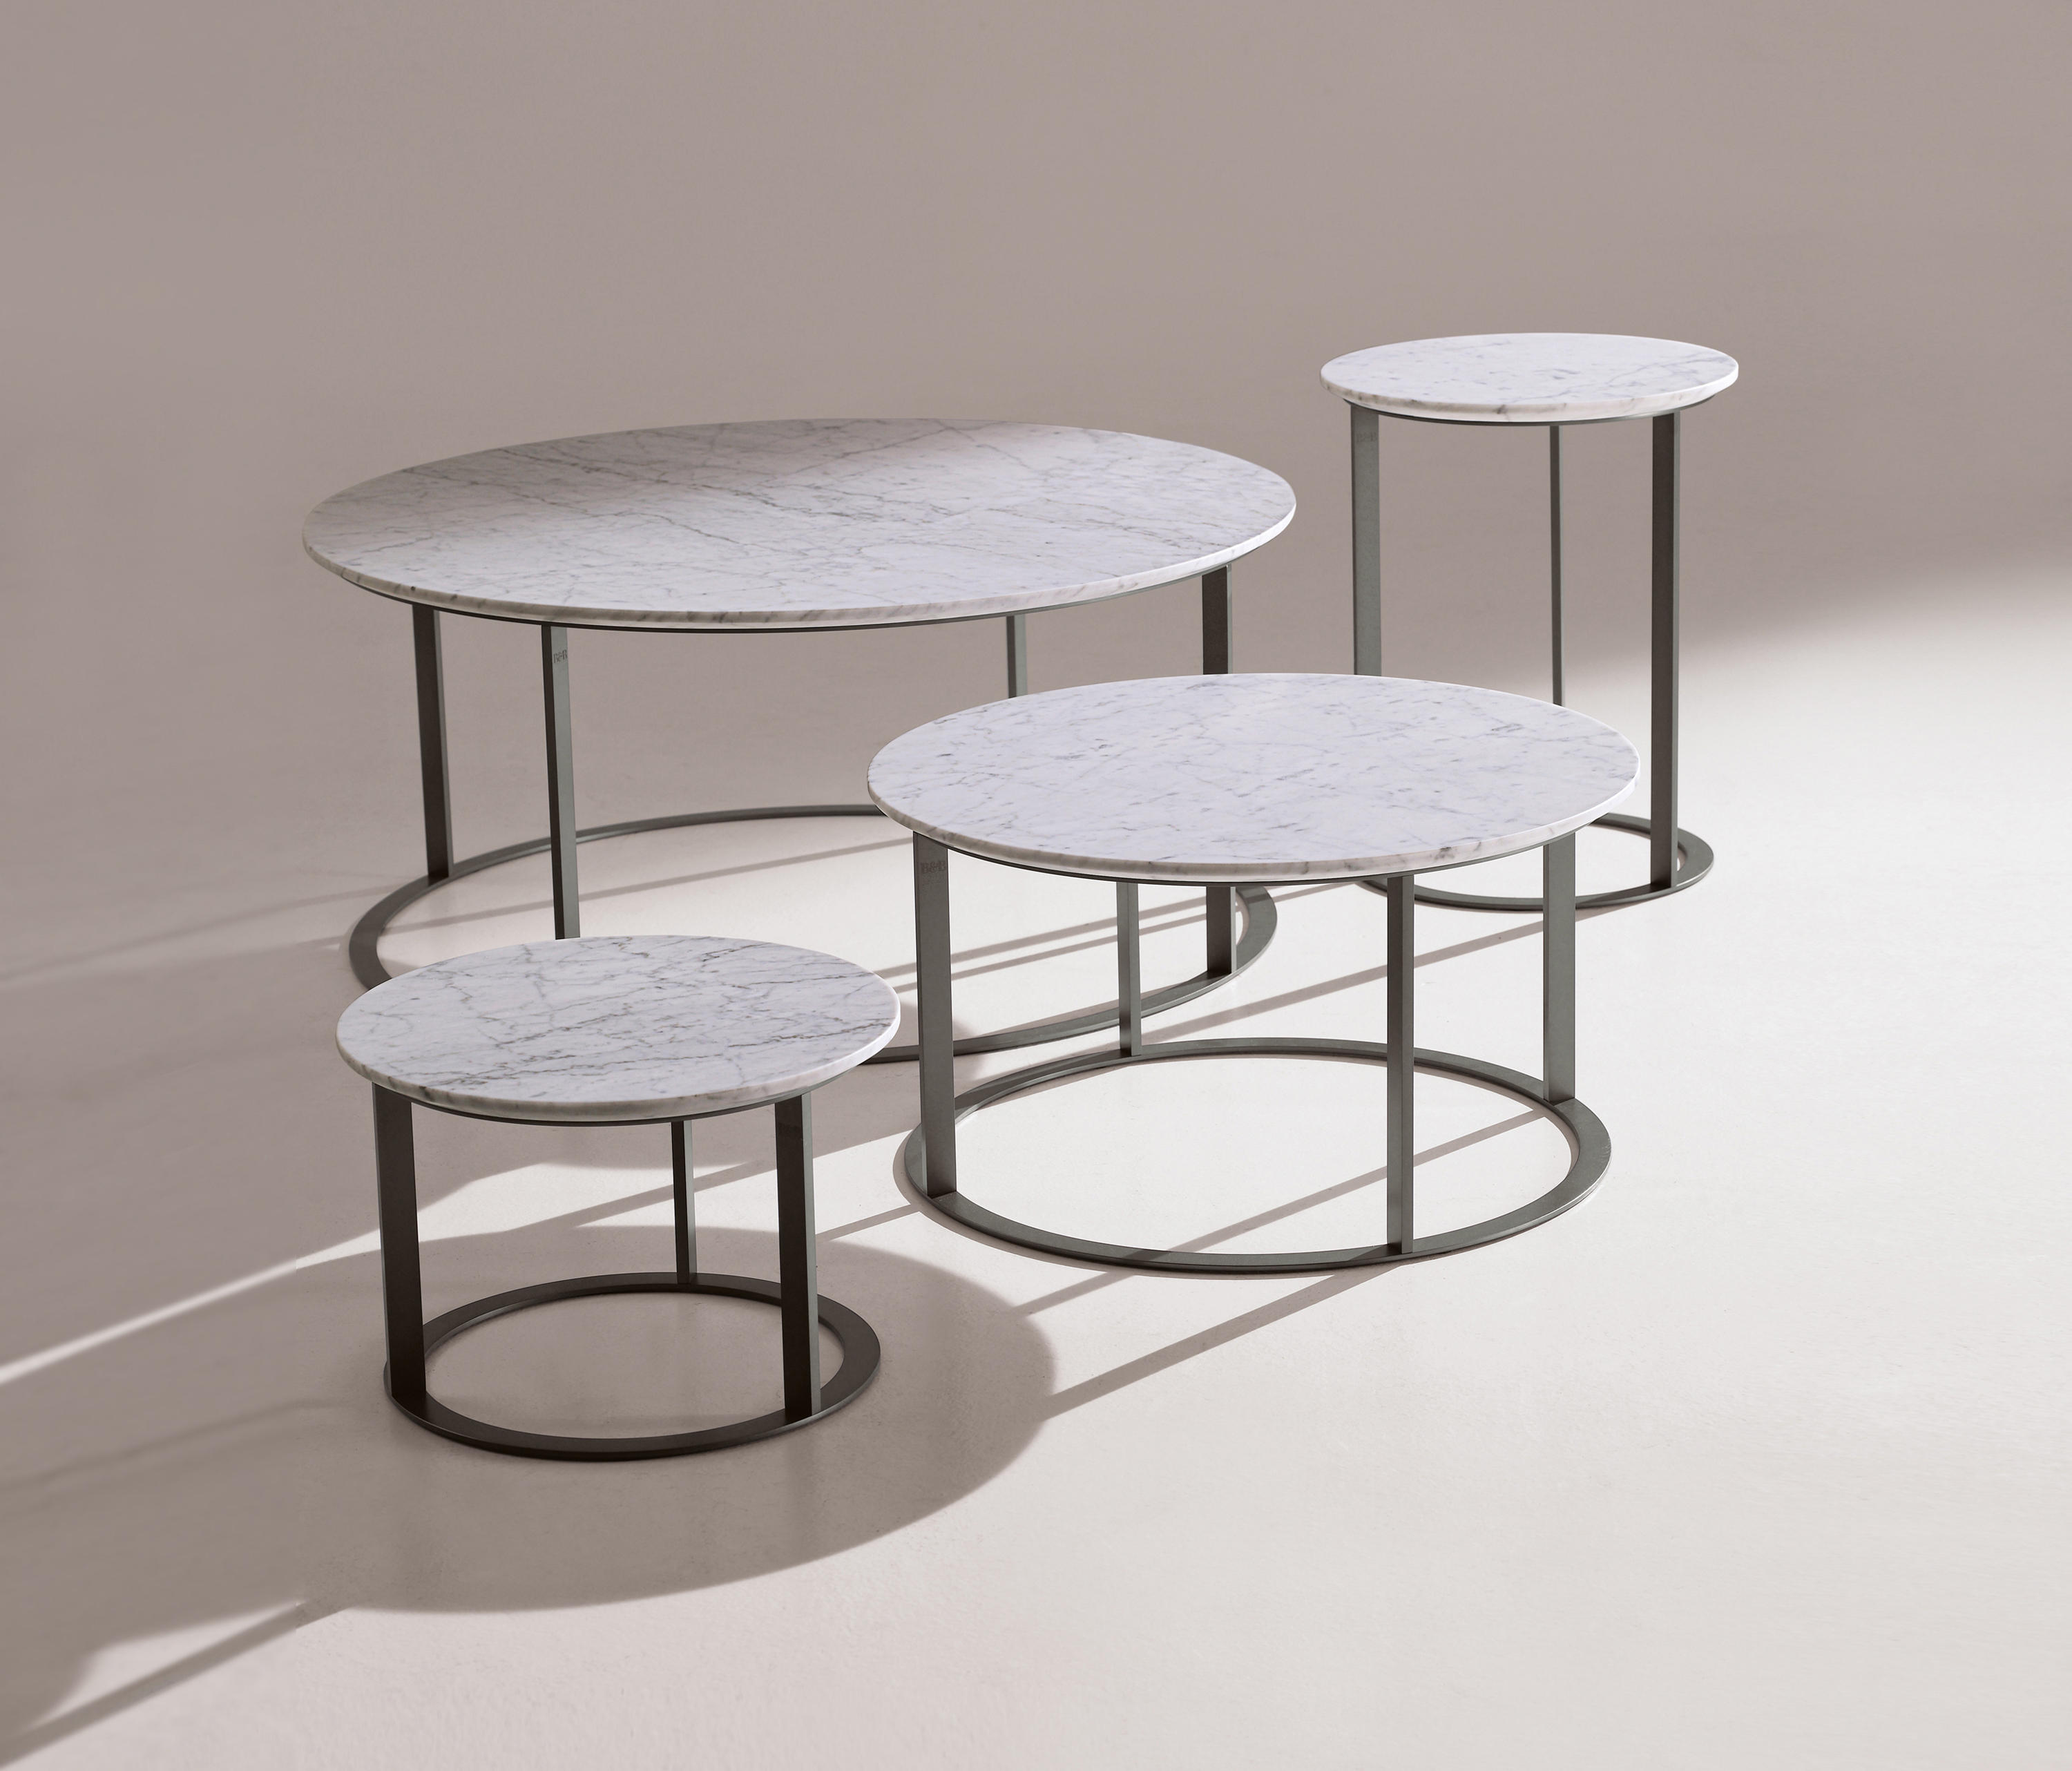 MERA Lounge tables from B&B Italia